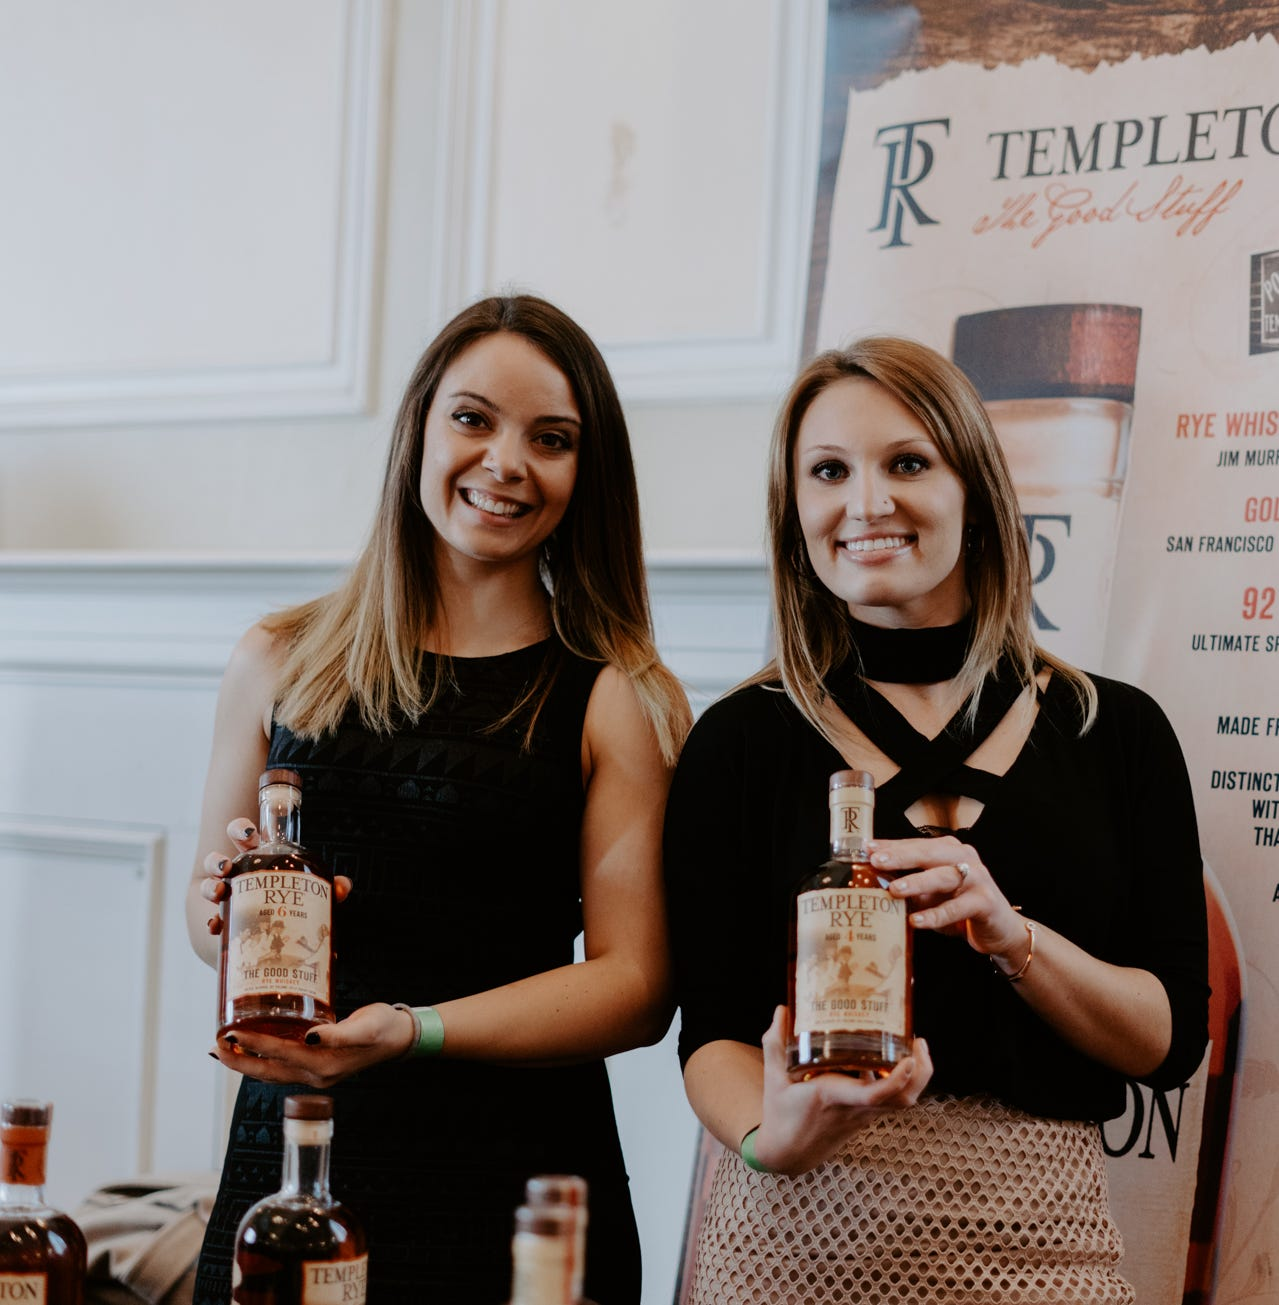 Whiskey Riot Festival hits Rochester this weekend